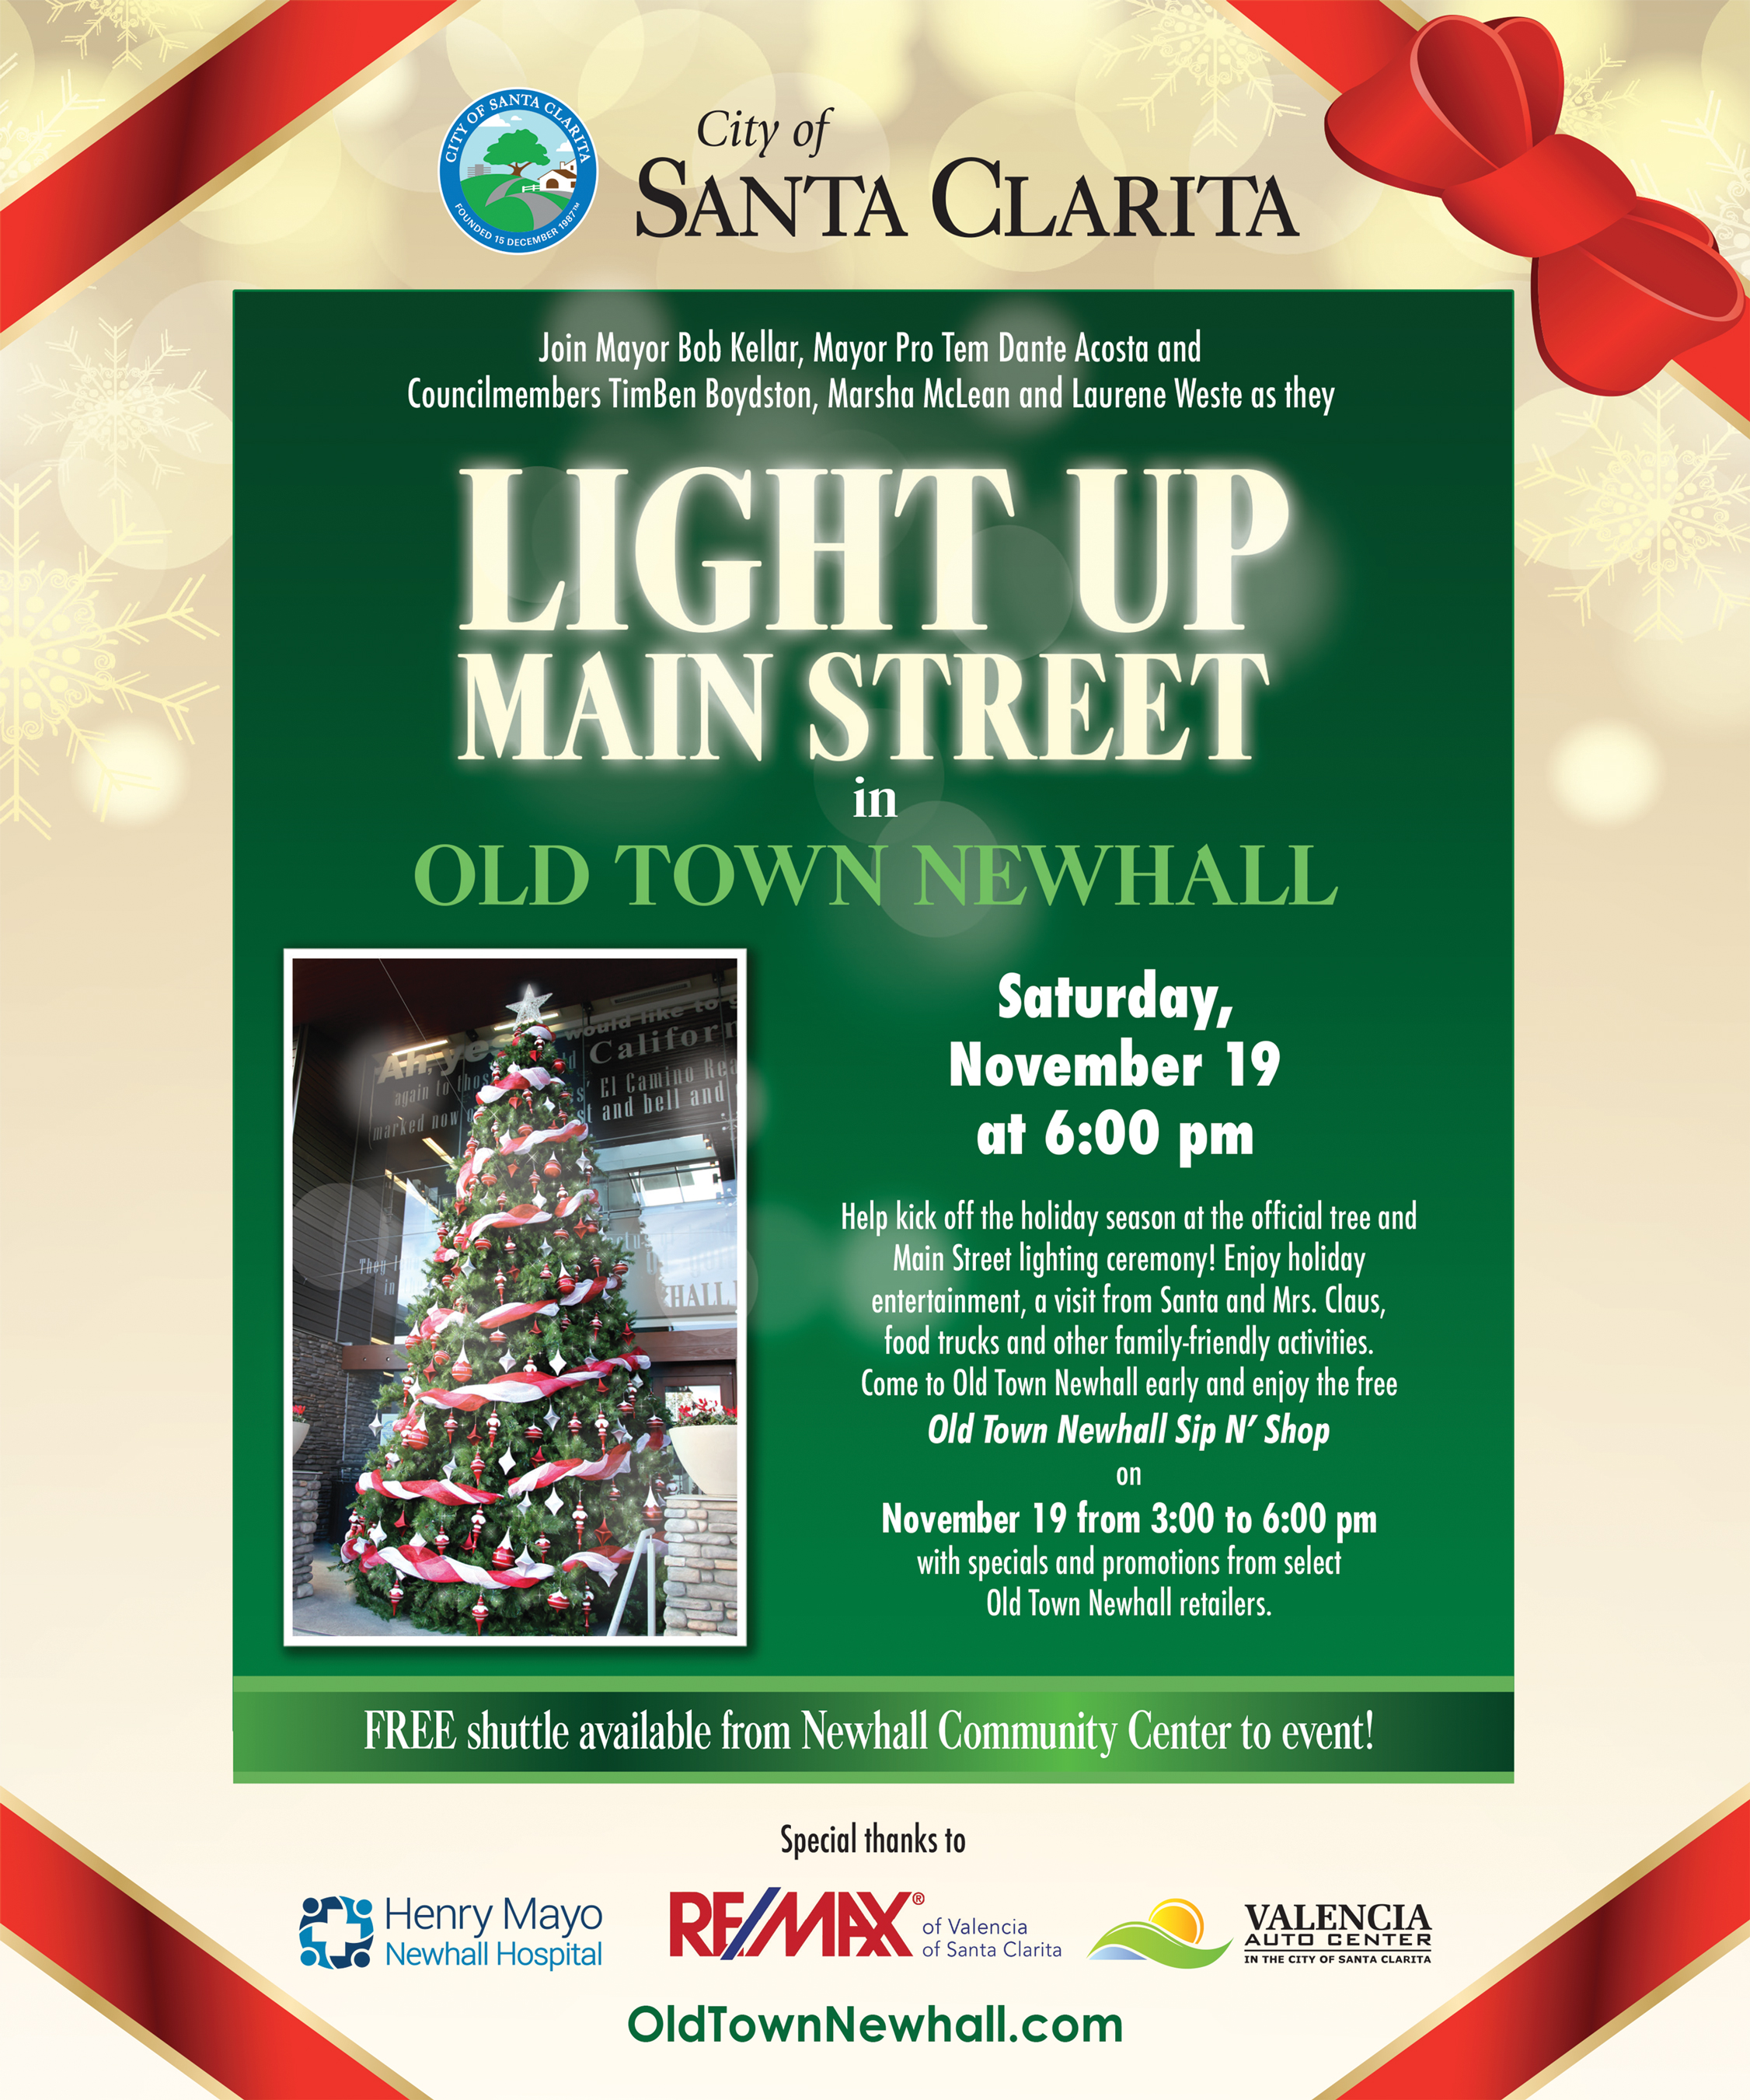 Light Up Main Street 2016 Kick Off Your Holiday Season in